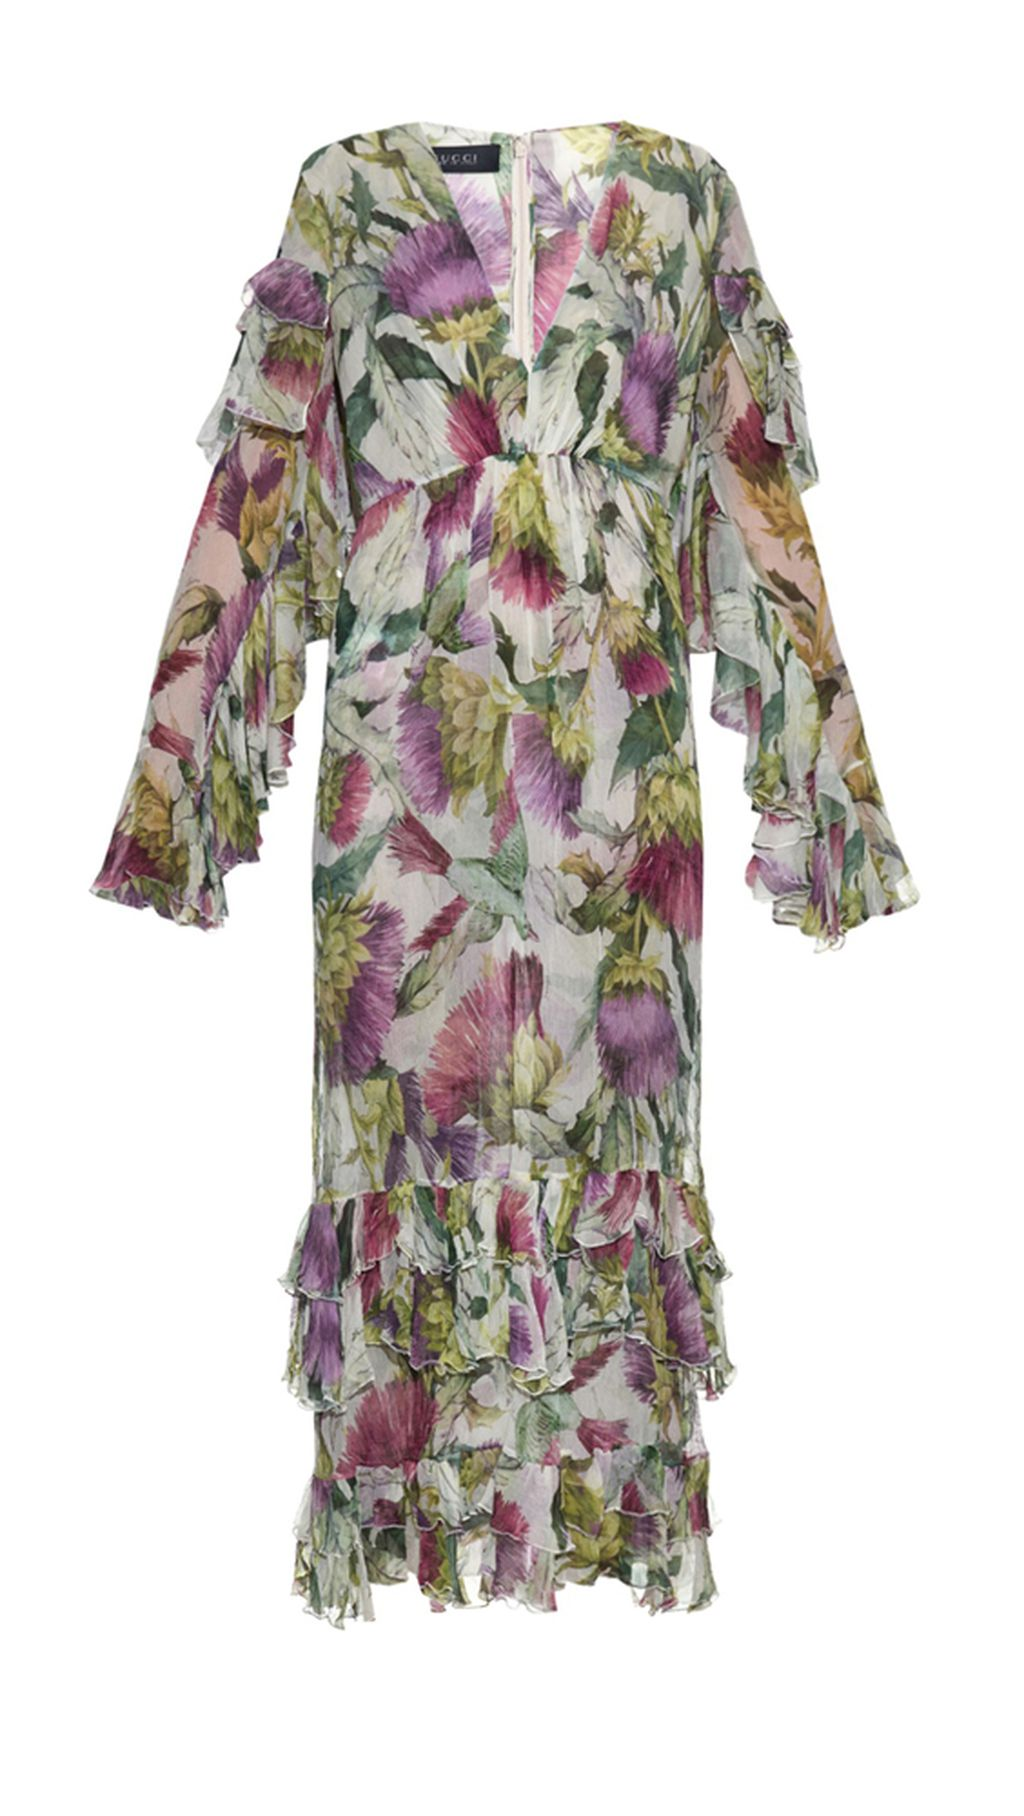 Dresses fit for swanning around in on Christmas Day c51f94e92